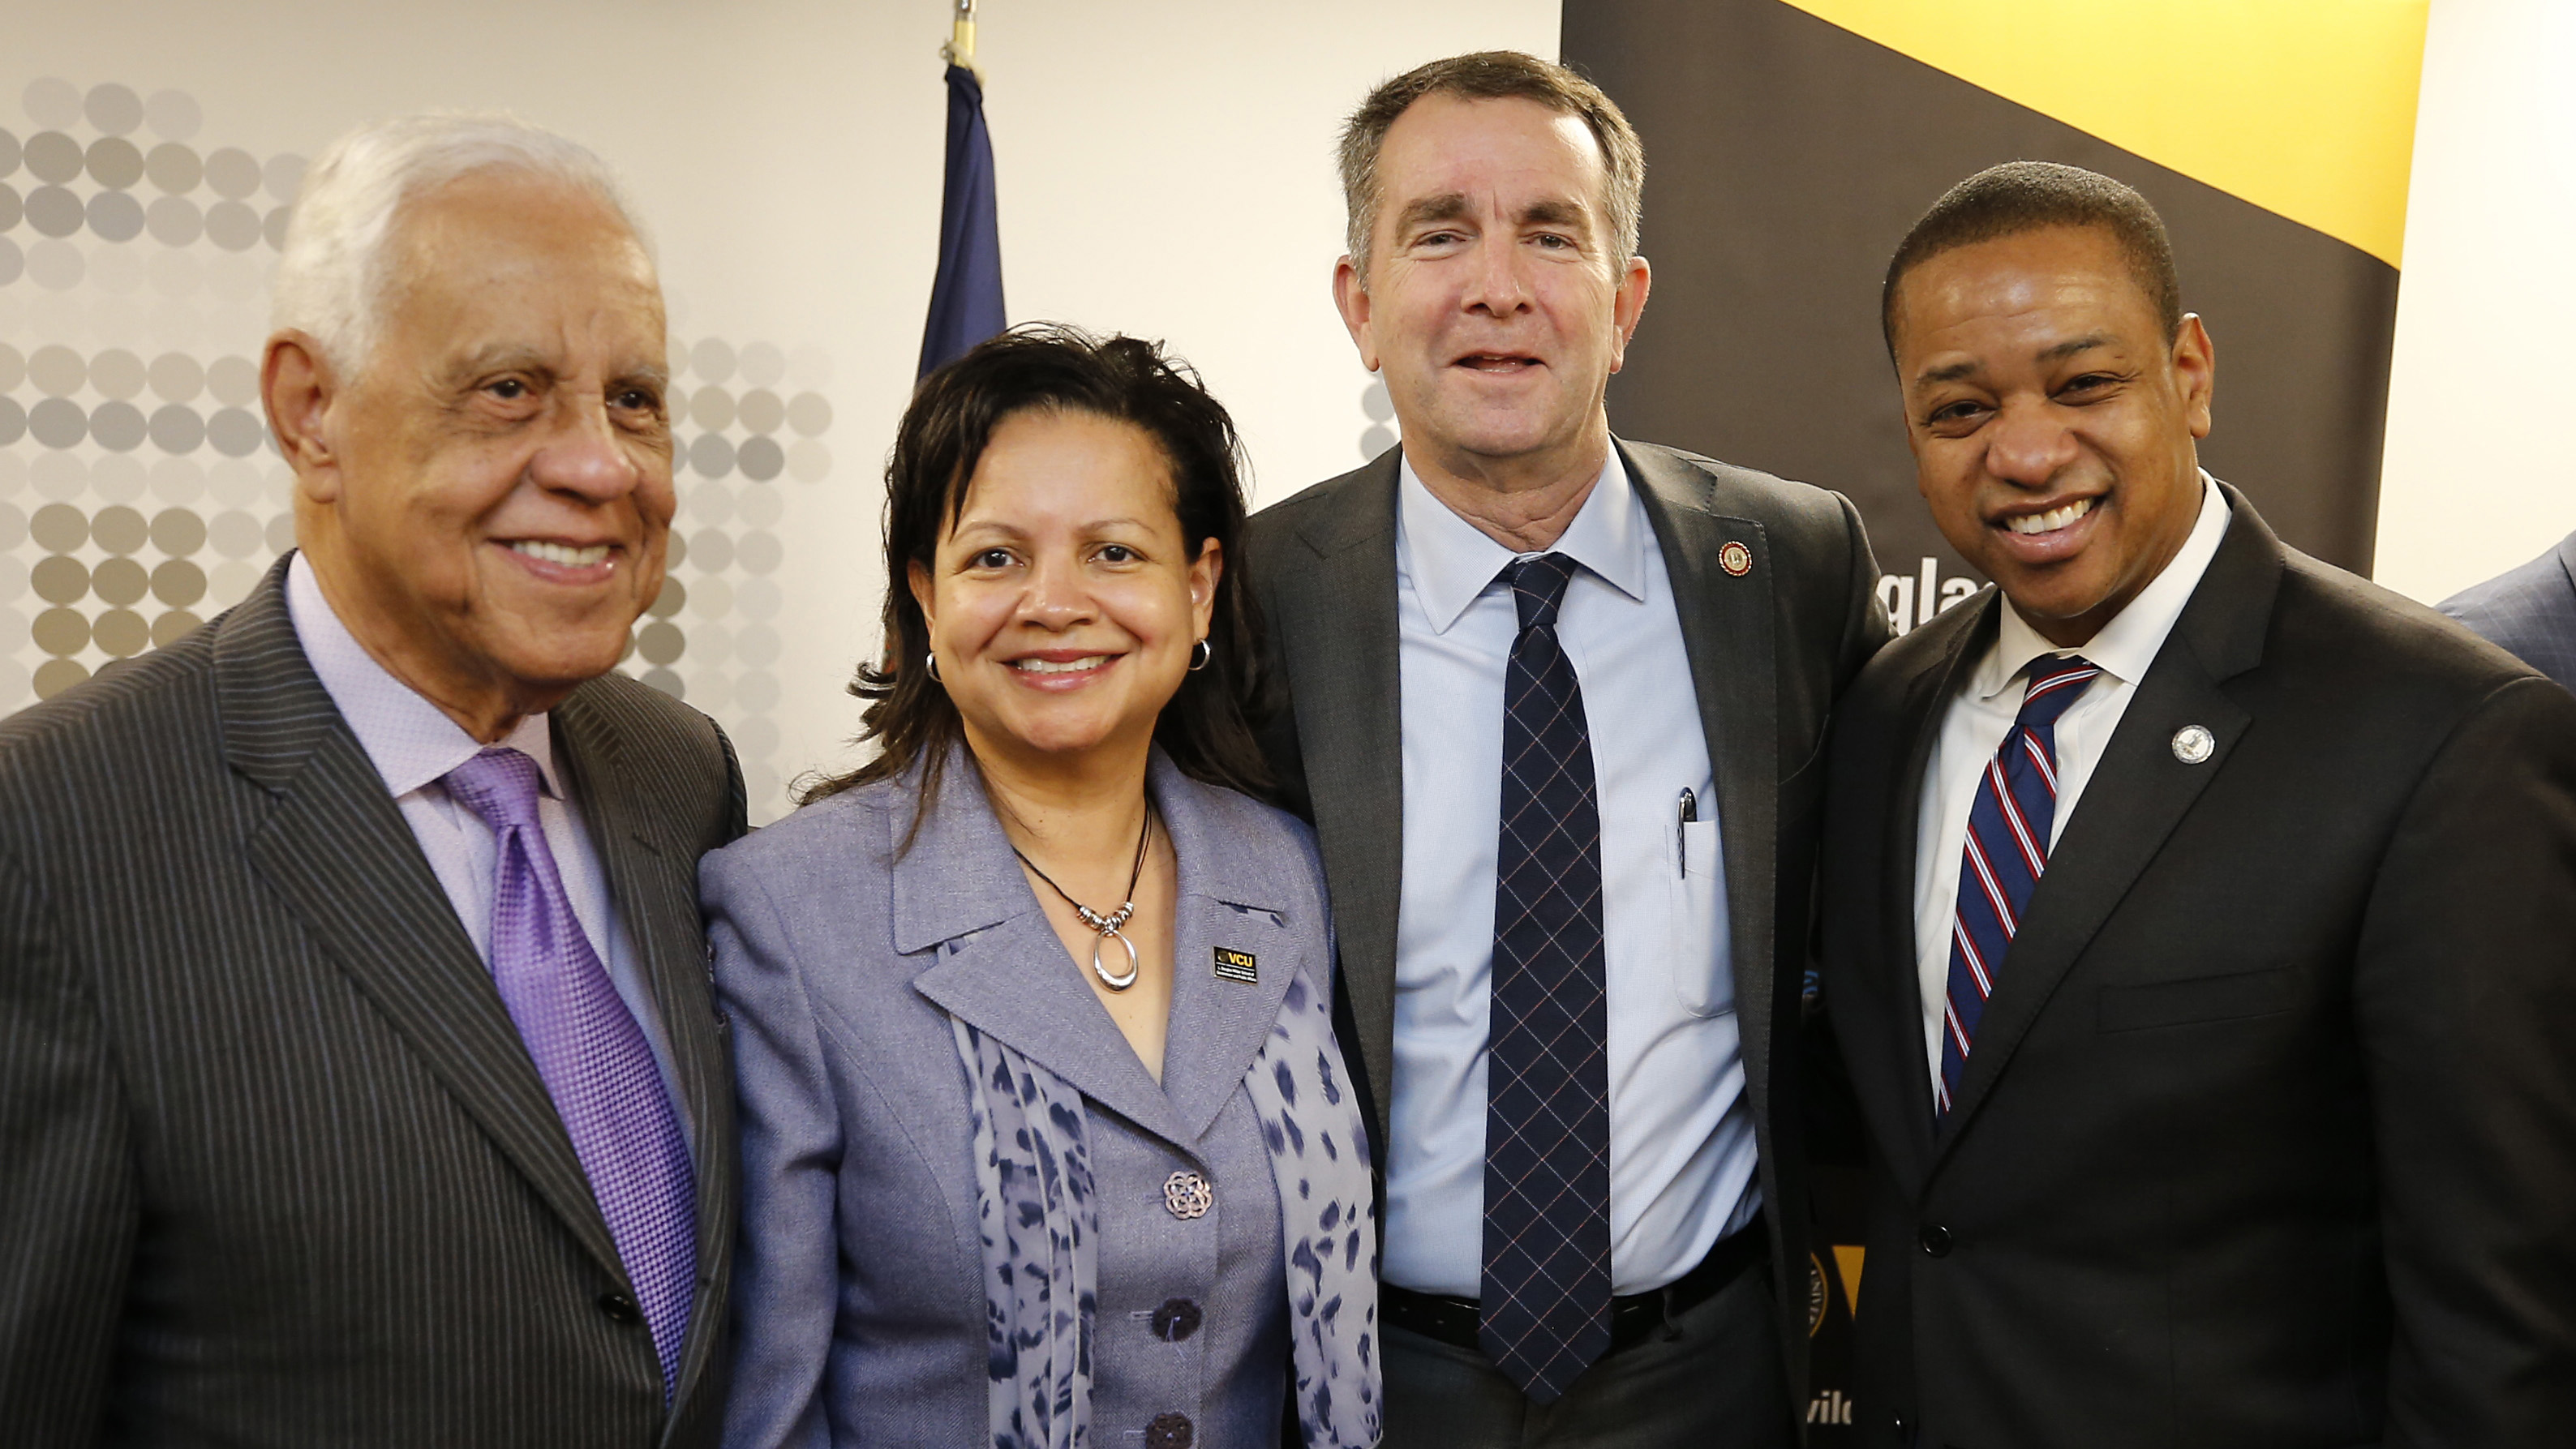 Top: L. Douglas Wilder, Virginia's 66th governor; Interim Dean Susan Gooden, Ph.D.; Governor Ralph Northam; and Lt. Gov. Justin Fairfax. Second: Secretary of Commerce and Trade Brian Ball; Gov.  Northam; Lt. Gov. Fairfax; and Secretary of Education Atif Qarni. Below: Gov. Wilder, Dr. Gooden and Gov. Northam listen to VCU Provost Gail Hackett's welcoming remarks.